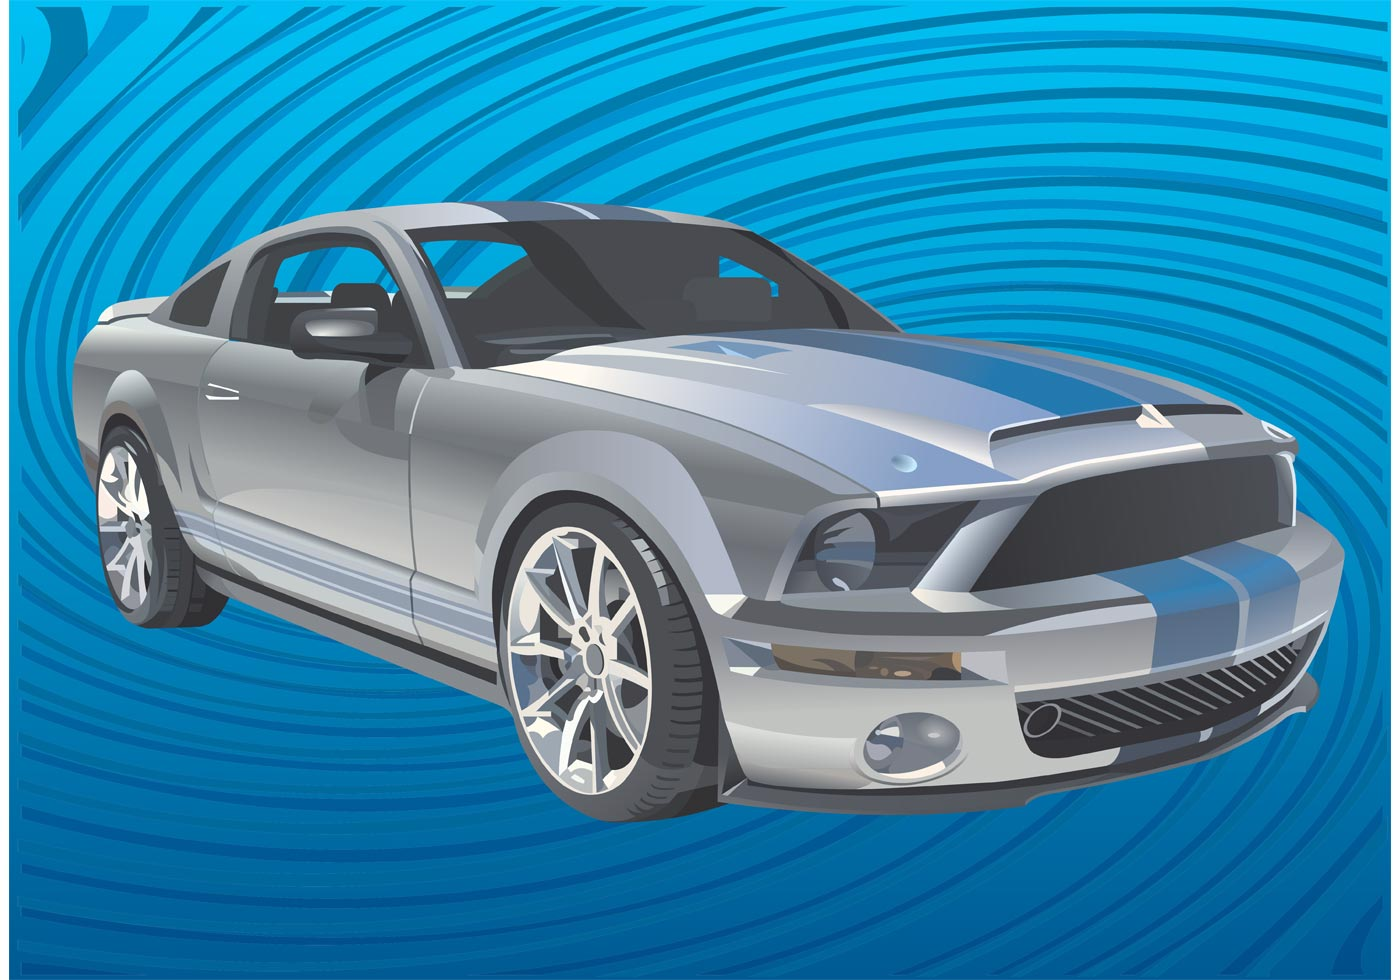 mustang car vector download free vector art stock graphics images. Black Bedroom Furniture Sets. Home Design Ideas